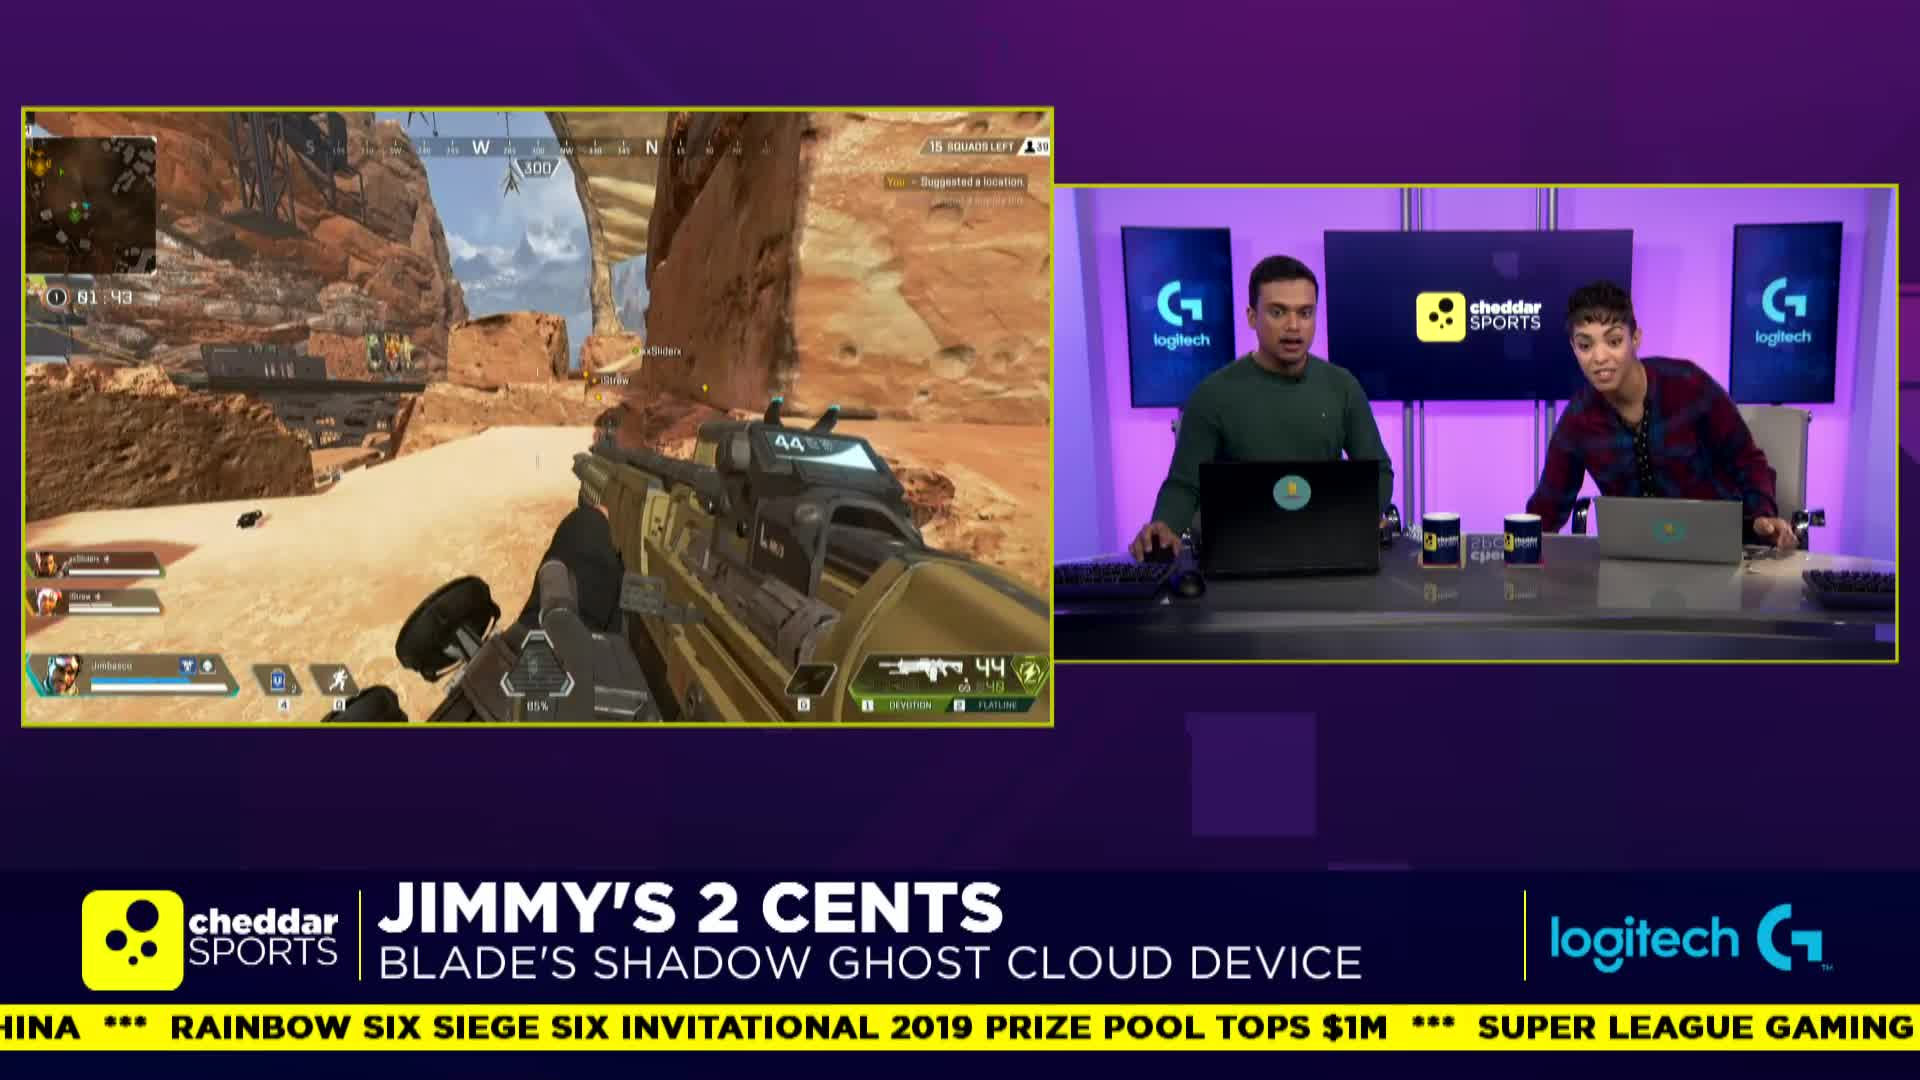 Cheddar - It enables gaming anywhere - Shadow - Twitch